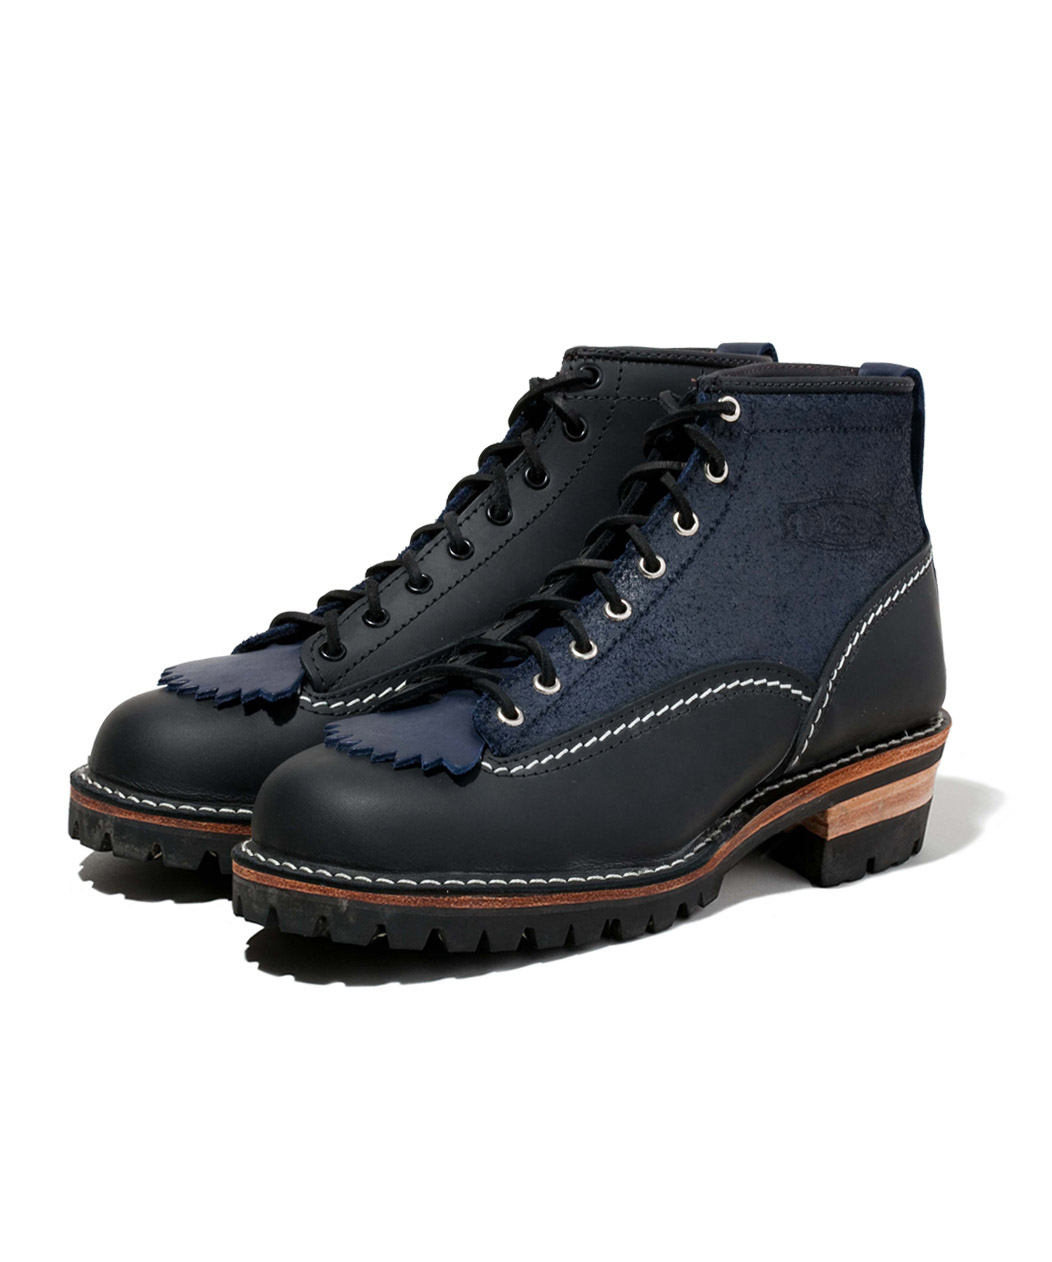 2Face CL Boots by Neighborhood × Wesco 2